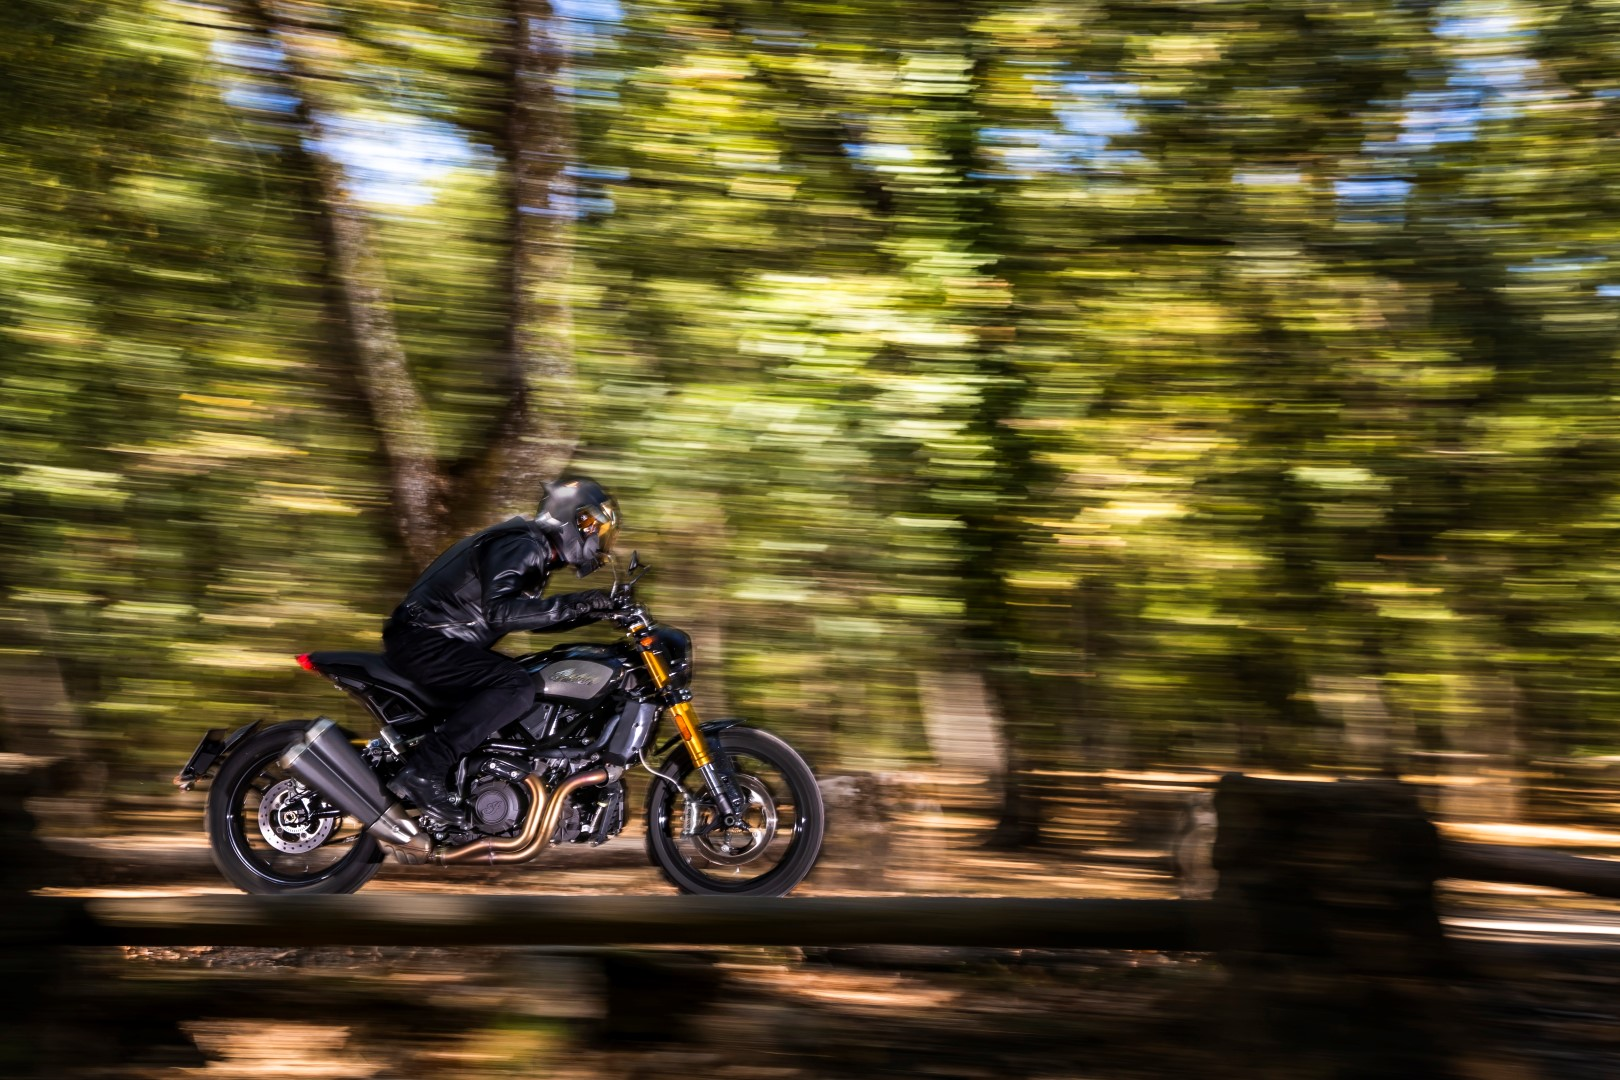 Indian FTR 1200 S, superprueba, fotos y ficha técnica